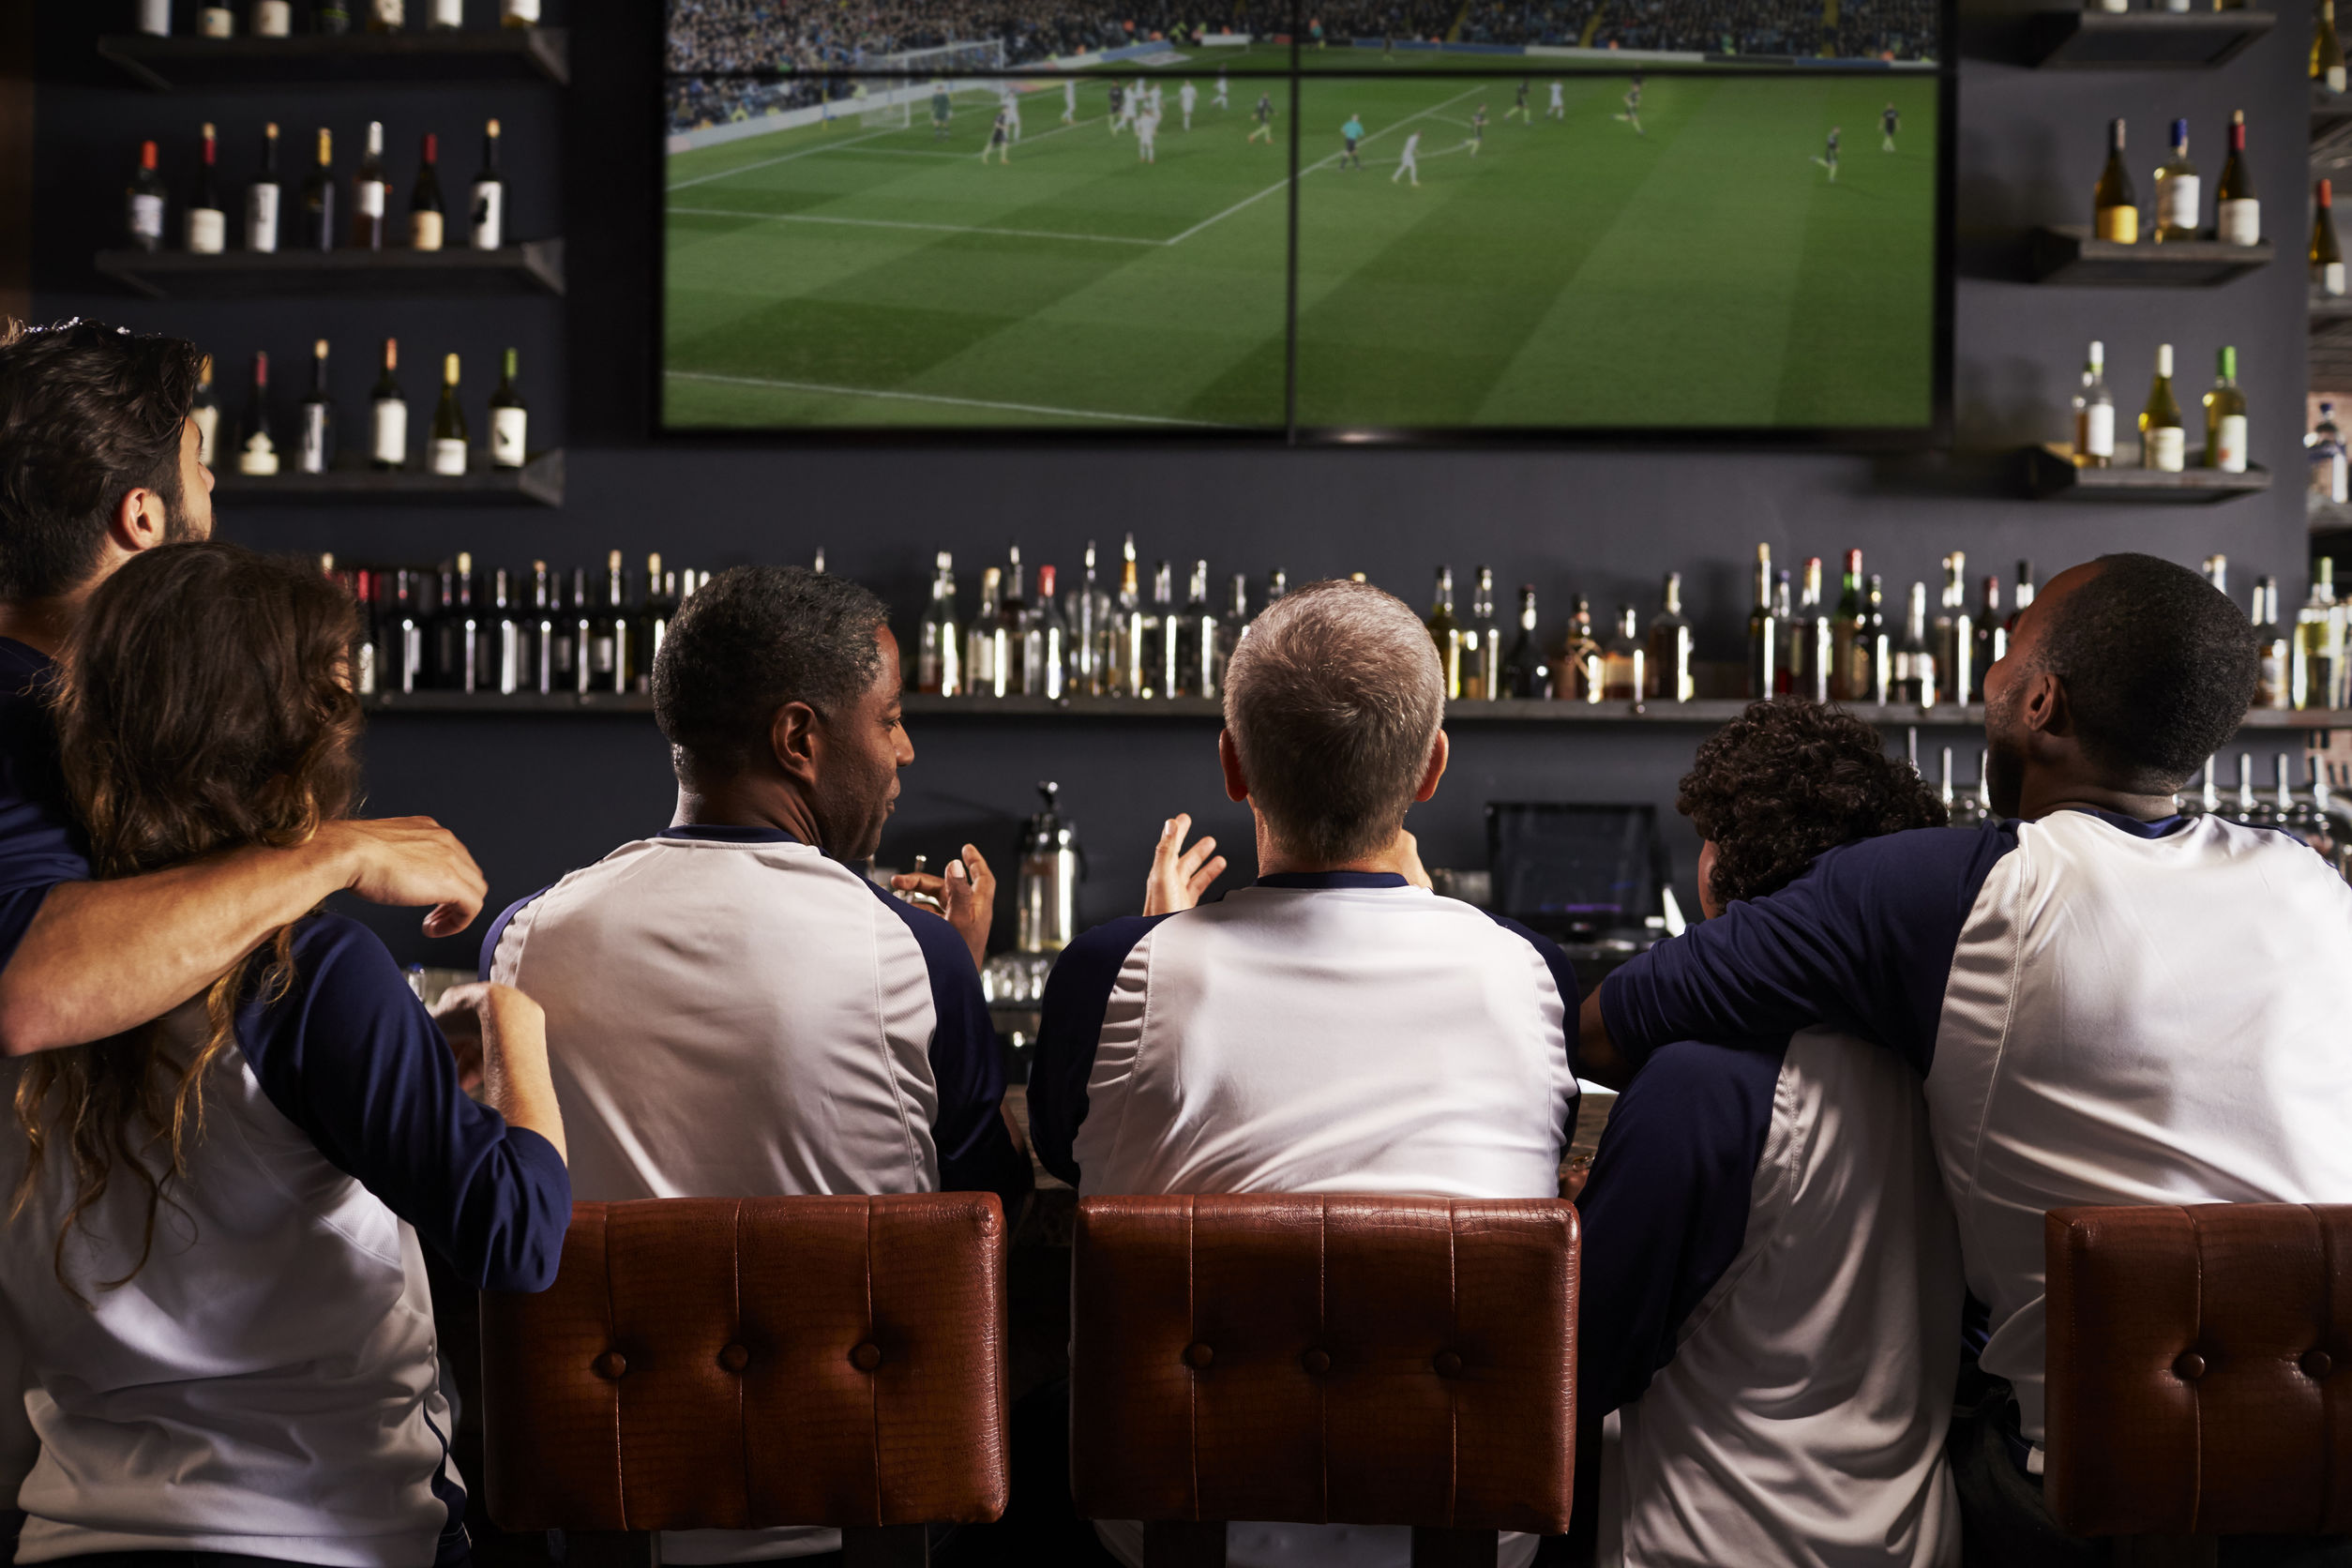 Satellite TV Rear View Of Friends Watching Game In Sports Bar Celebrating